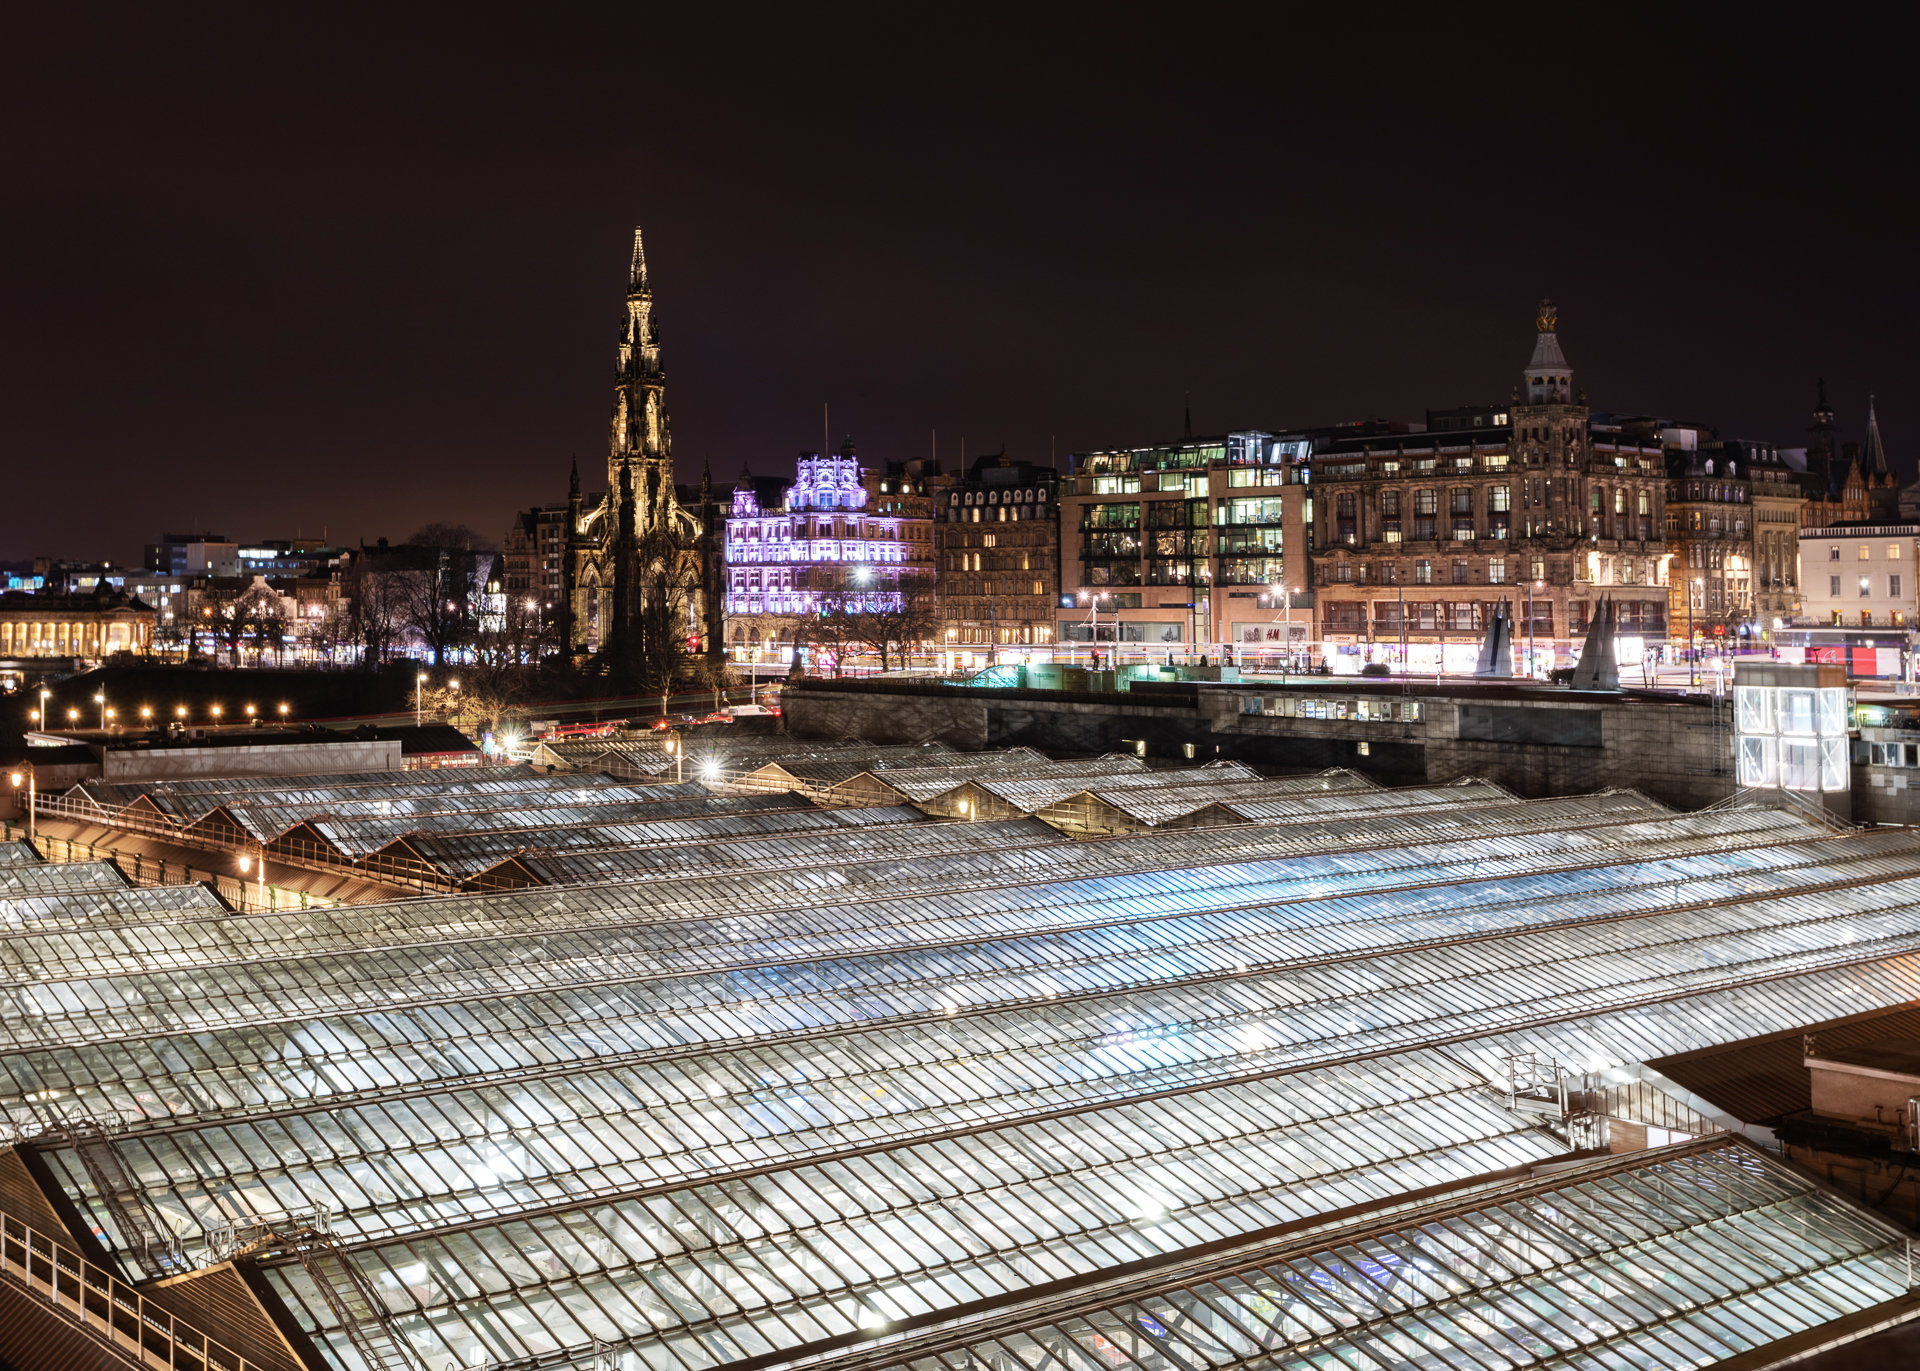 Edinburgh Waverley Railway Station I